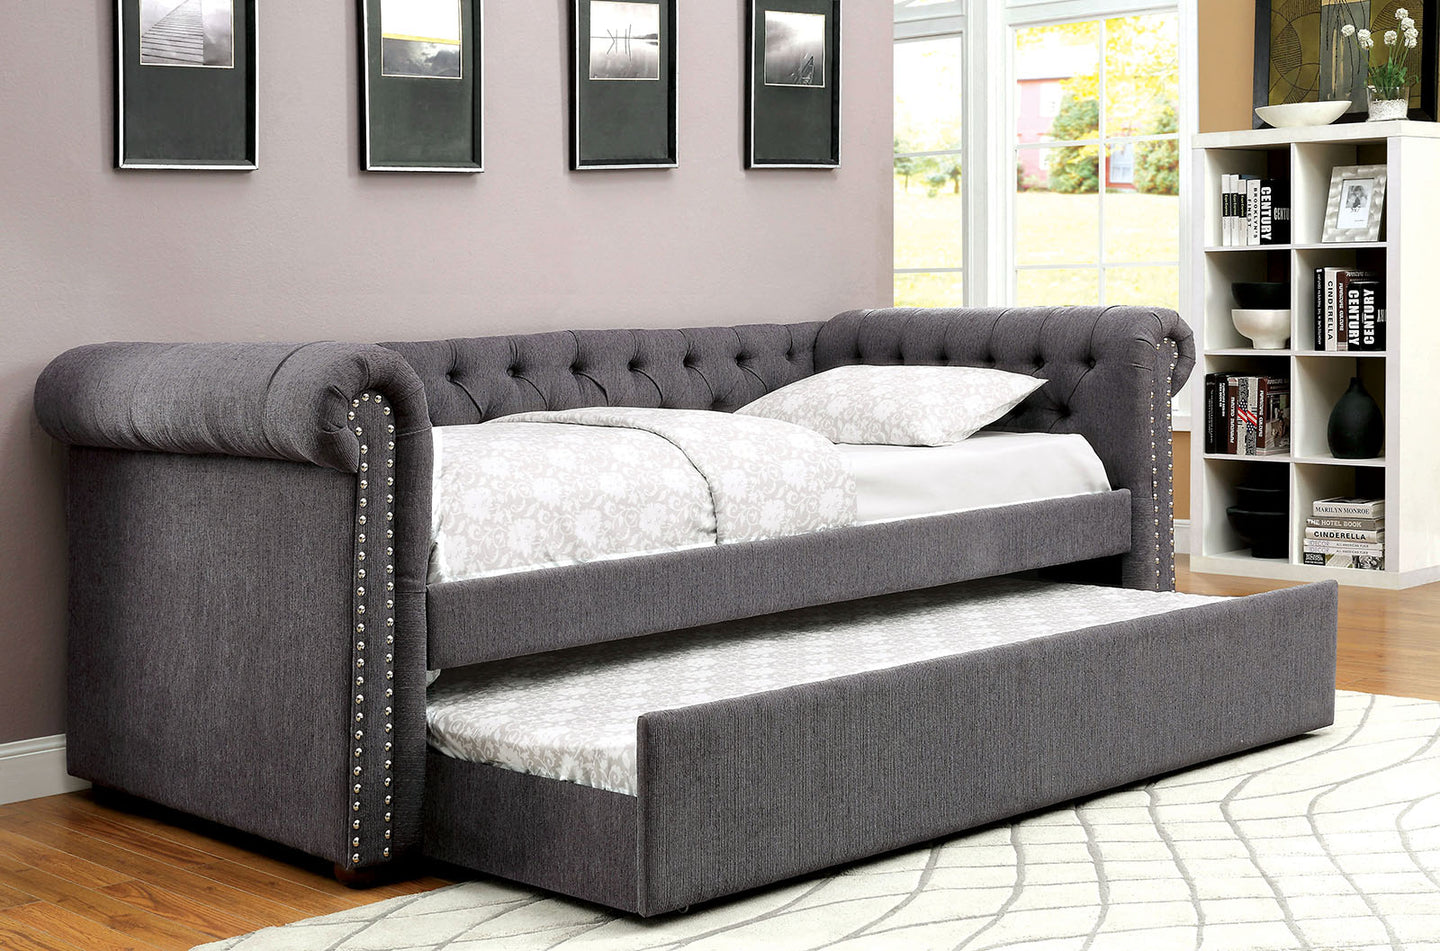 Leanna CM1027GY Transitional Gray Fabric Daybed with Trundle